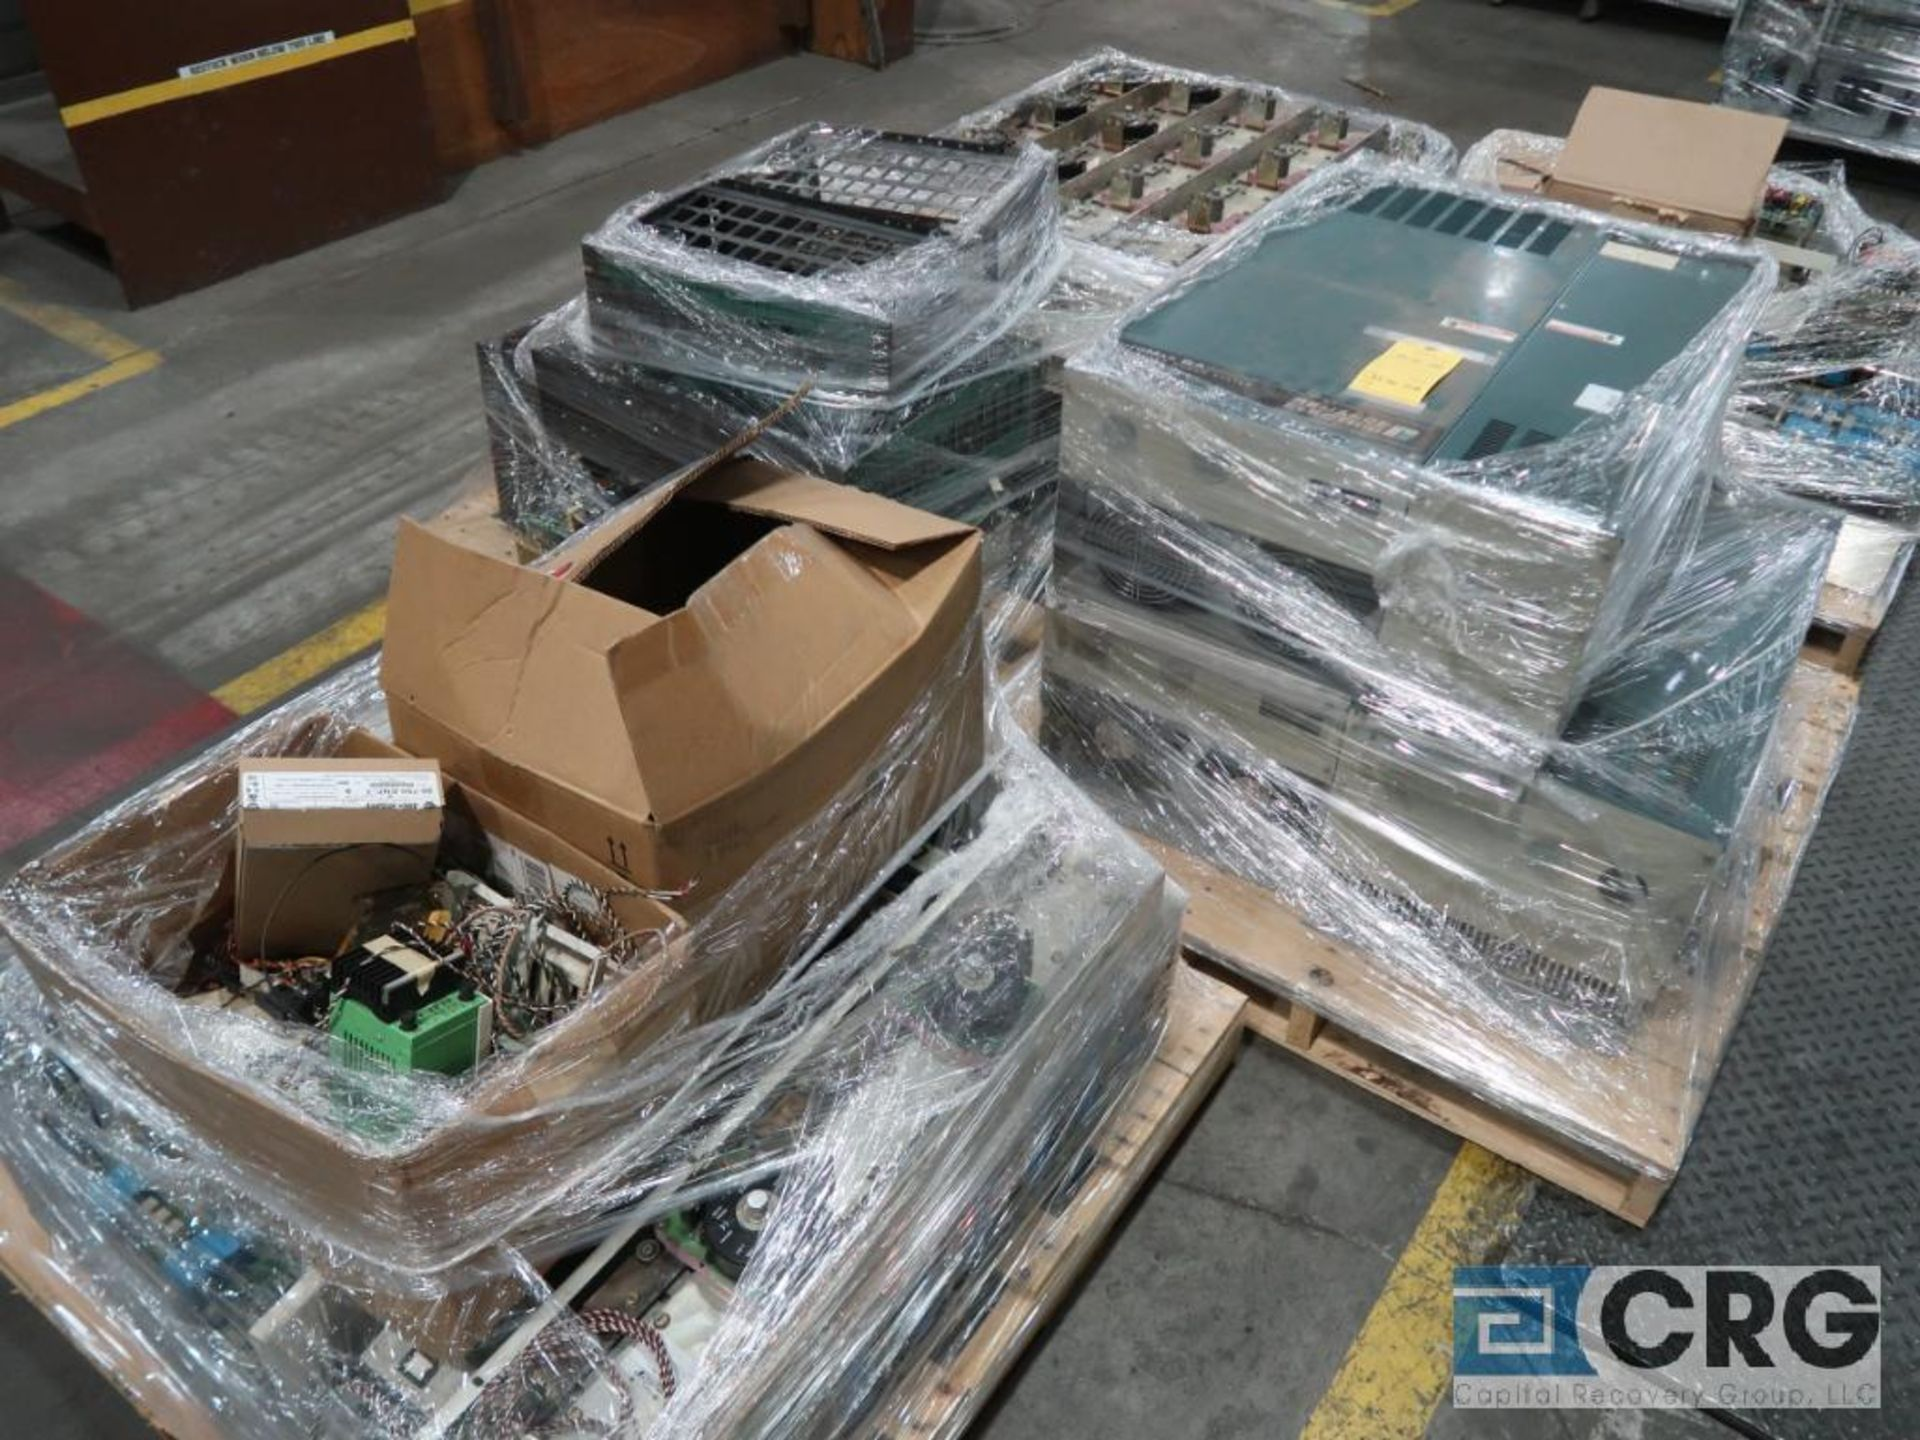 Lot of (13) pallets with electrical drive system with (18) ABB drives, Reliance, Auto Max SA3000 - Image 2 of 4